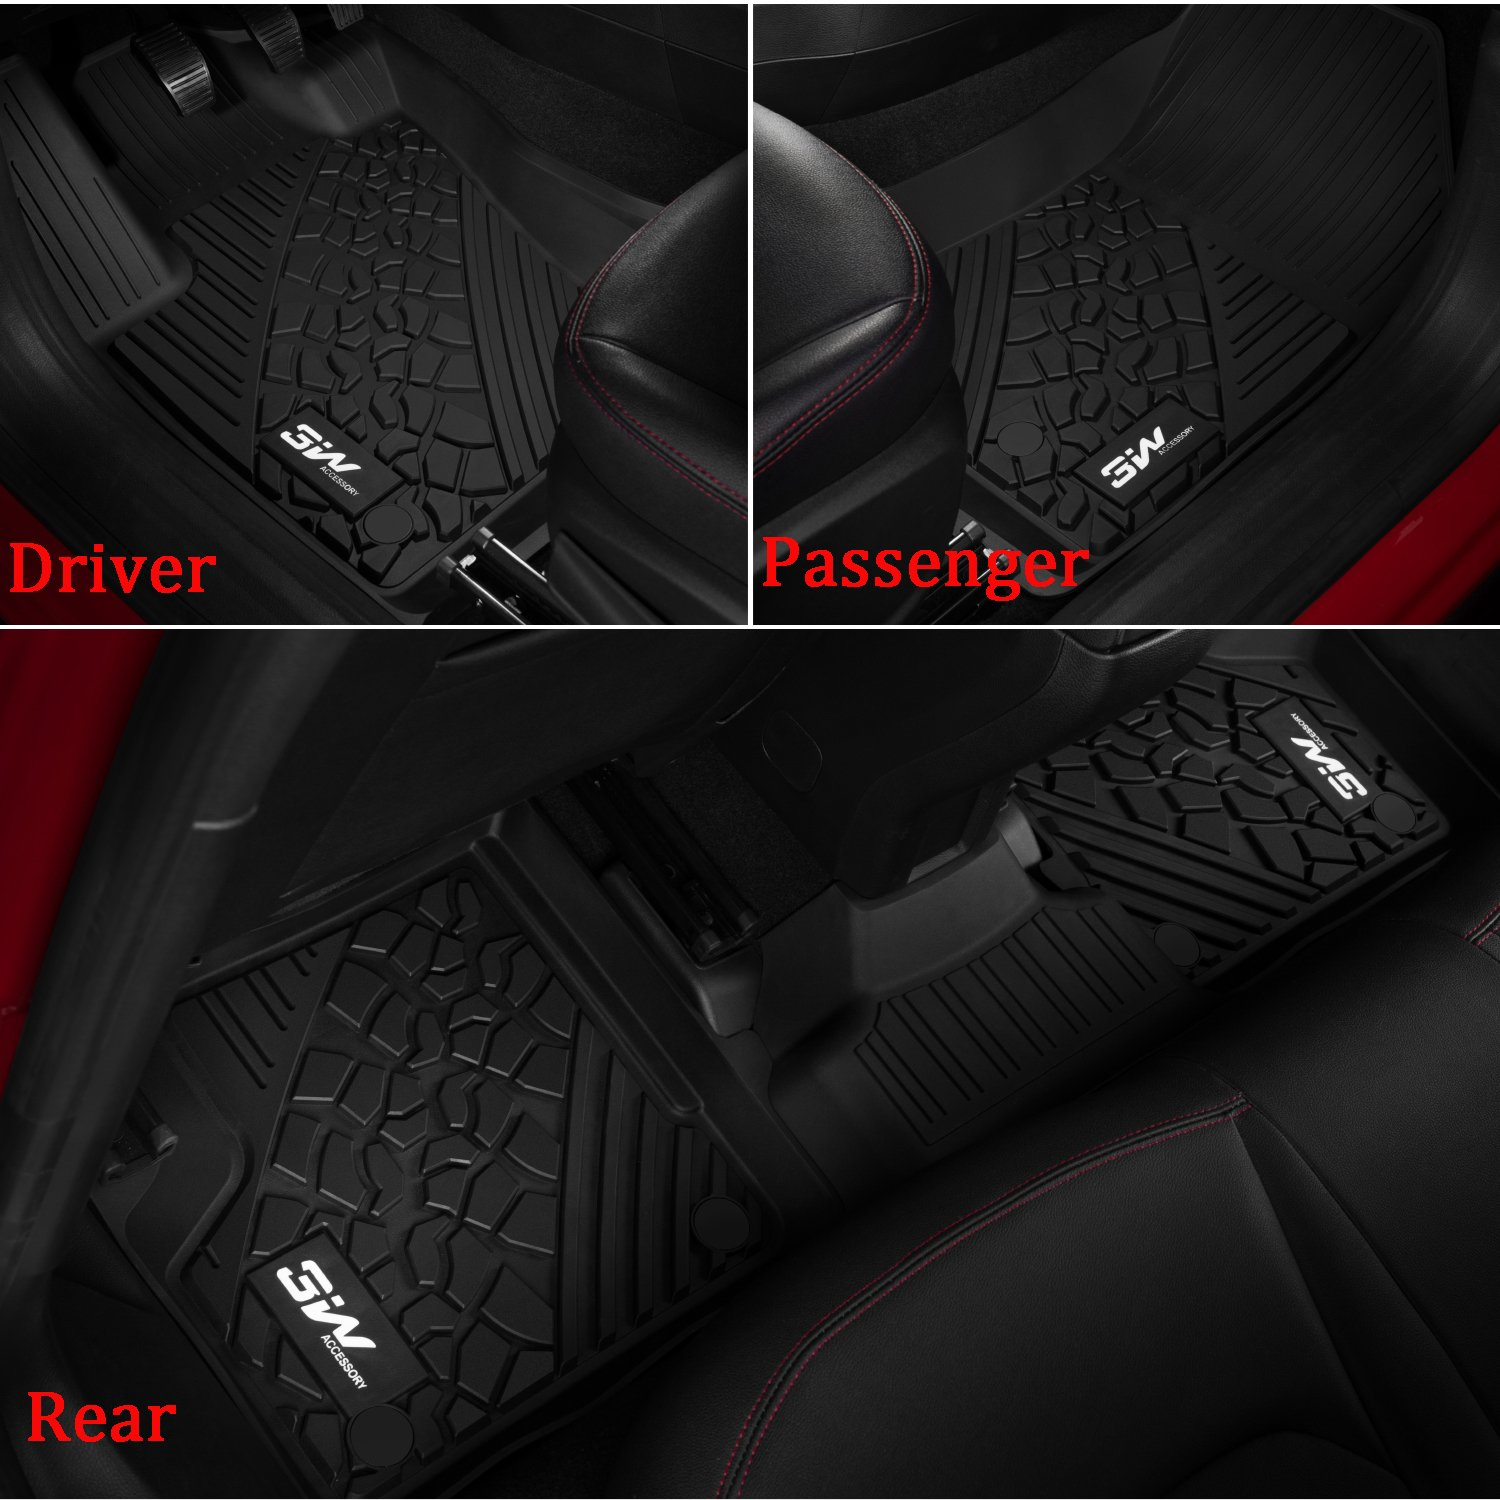 3W Floor Mats&Cargo Liner for Jeep Grand Cherokee (2016-2019) Full Set Heavy Duty Protection Custom Fit Floor Carpet&Trunk Mat All Weather Odorless TPE, Black by 3W (Image #2)